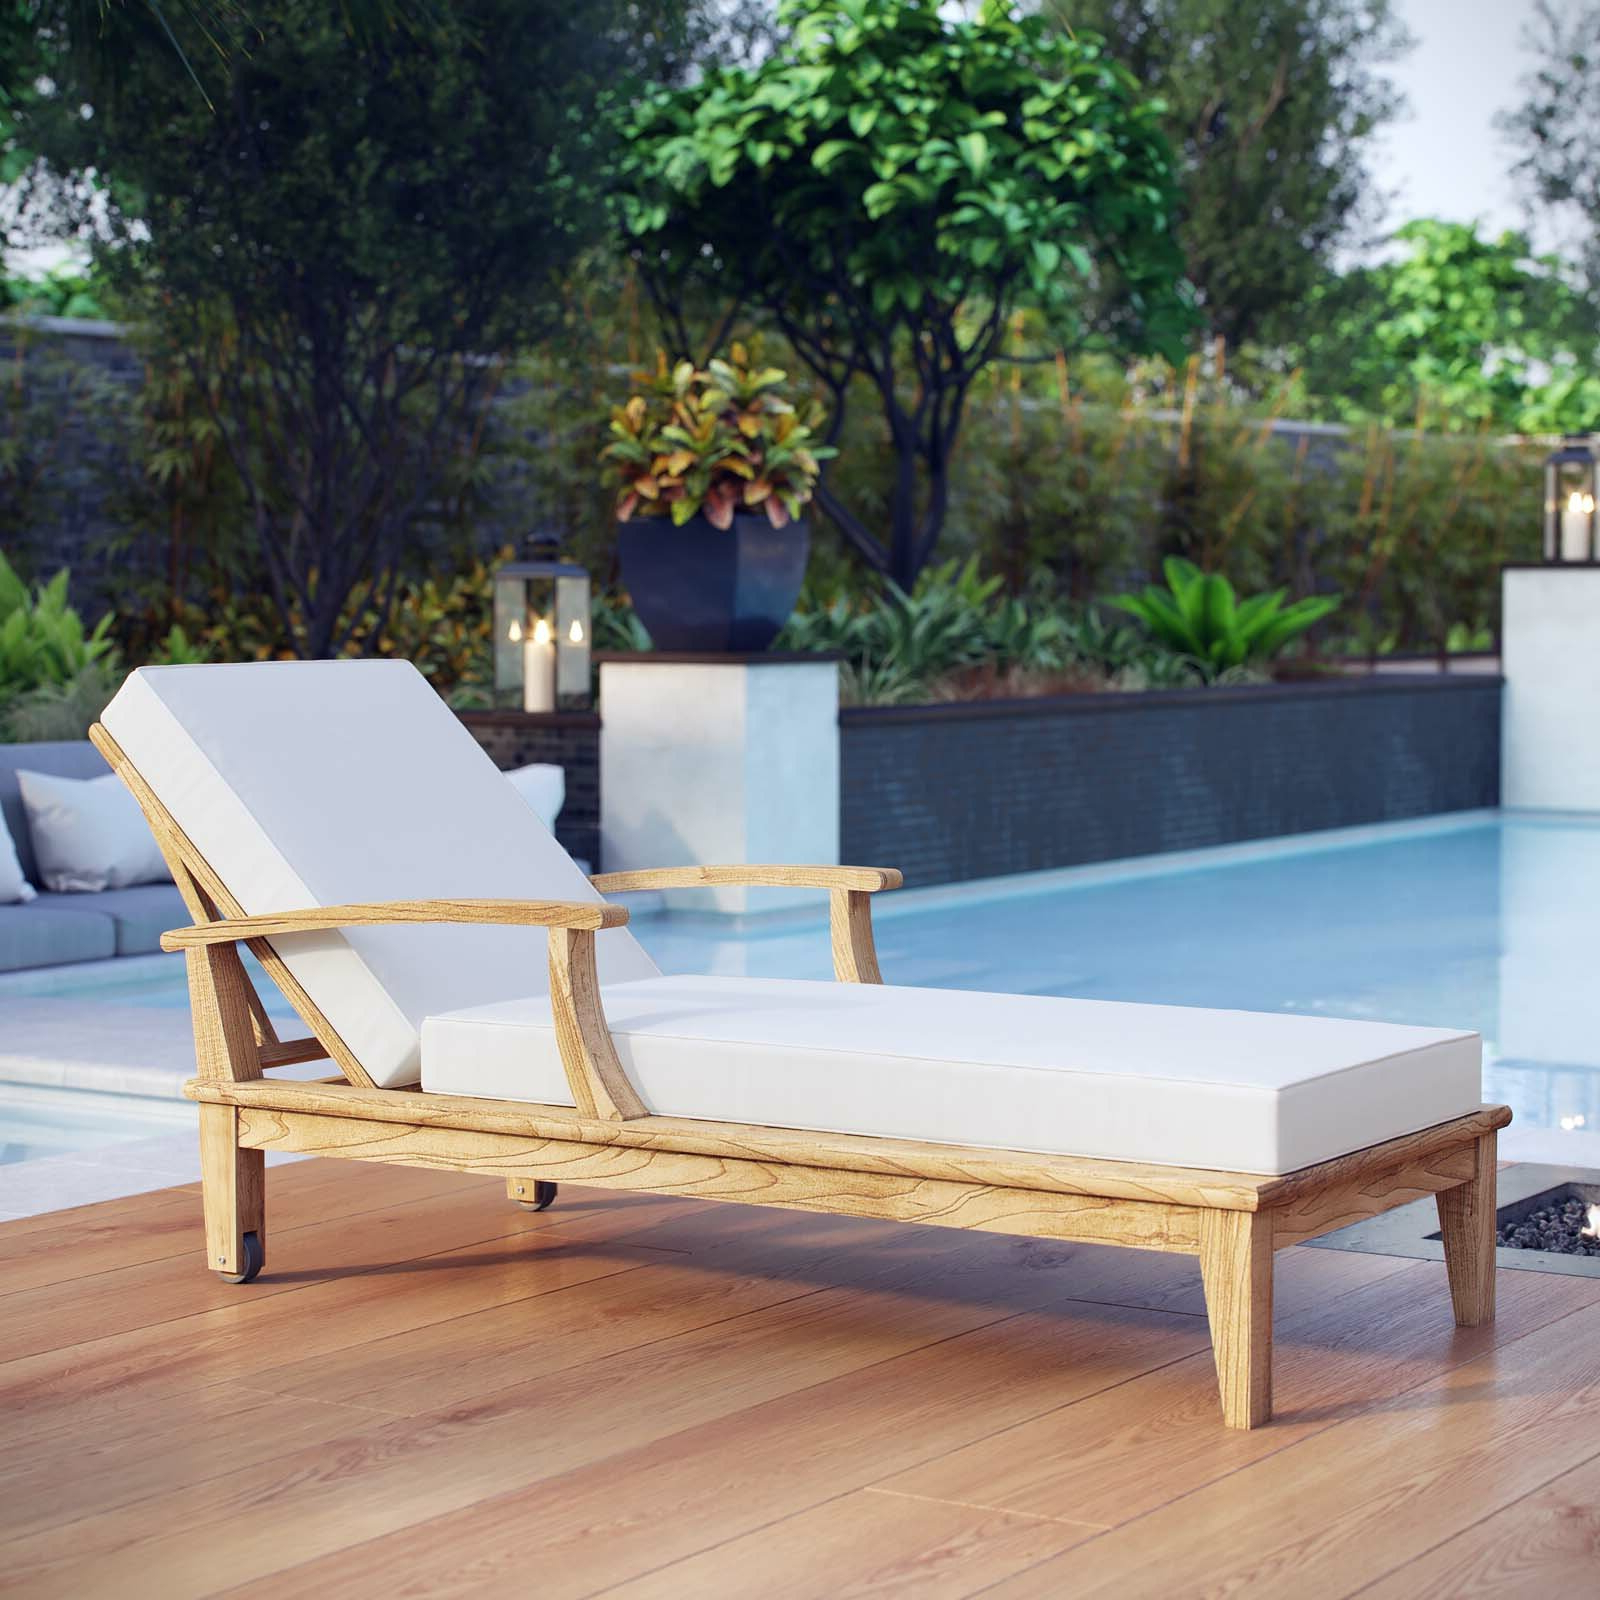 Elaina Teak Chaise Lounge For Popular Teak Chaise Loungers (View 15 of 25)